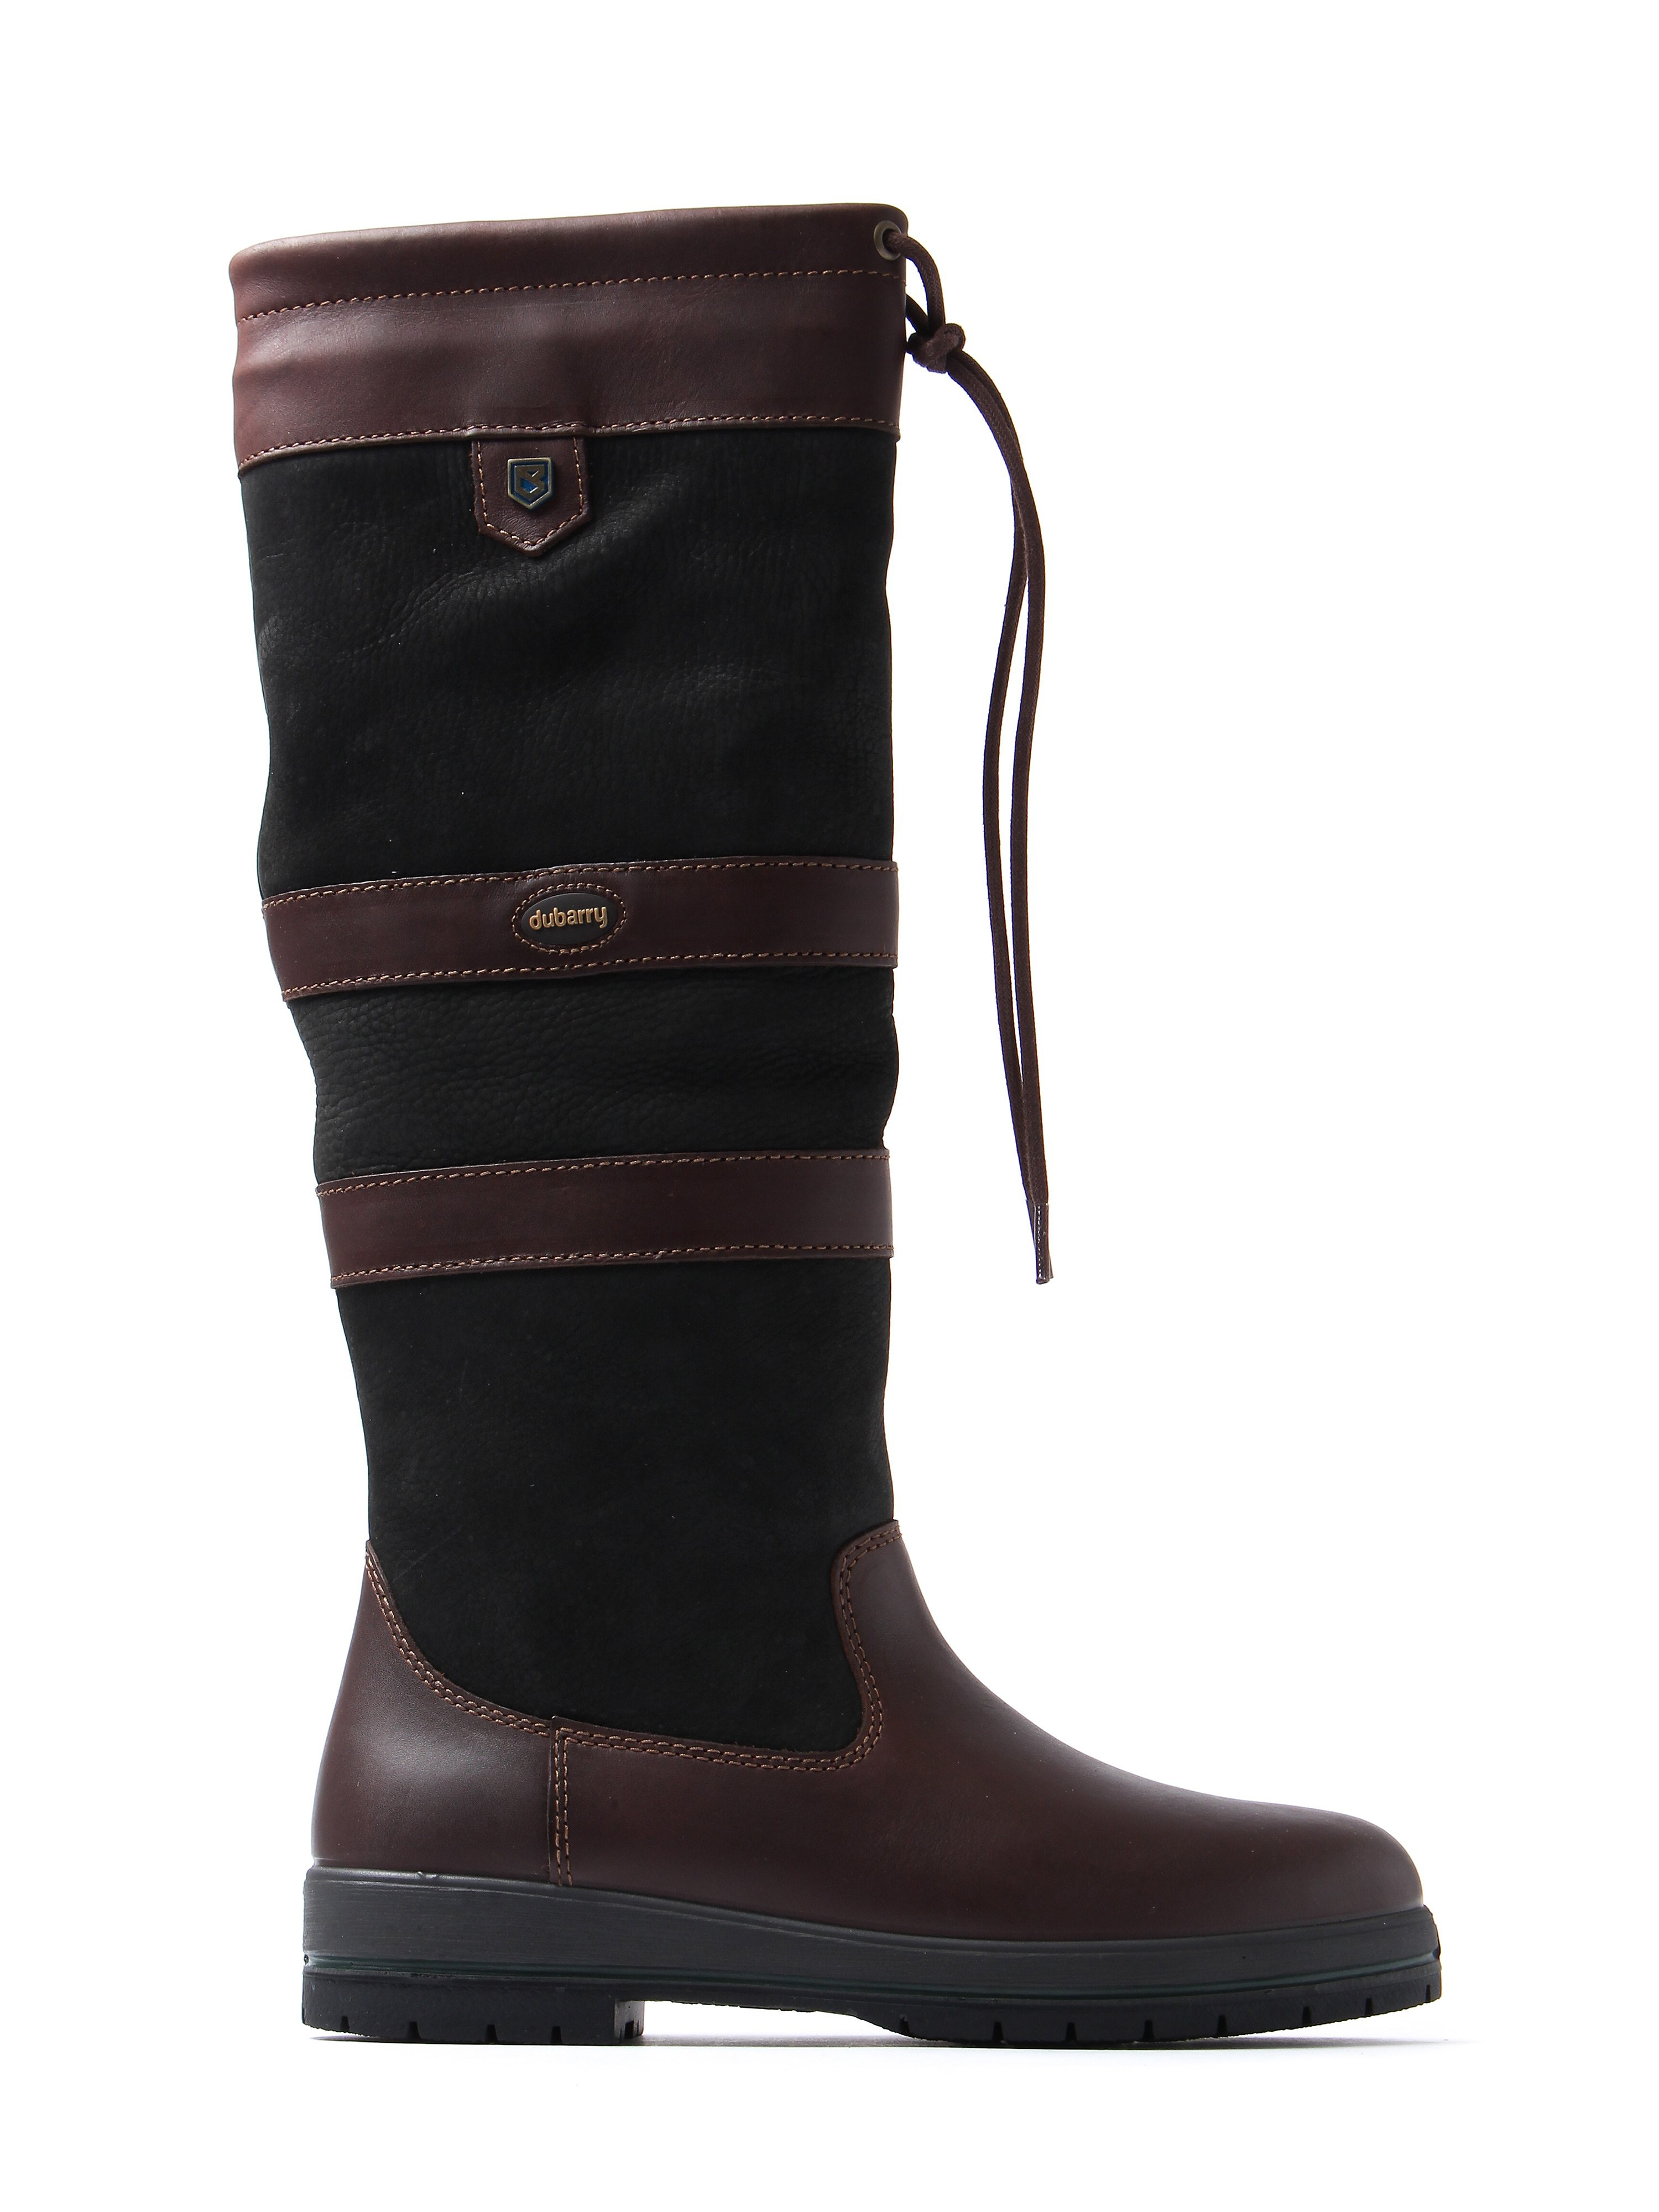 Dubarry Women's Galway Slim Fit Boots - Black & Brown Leather